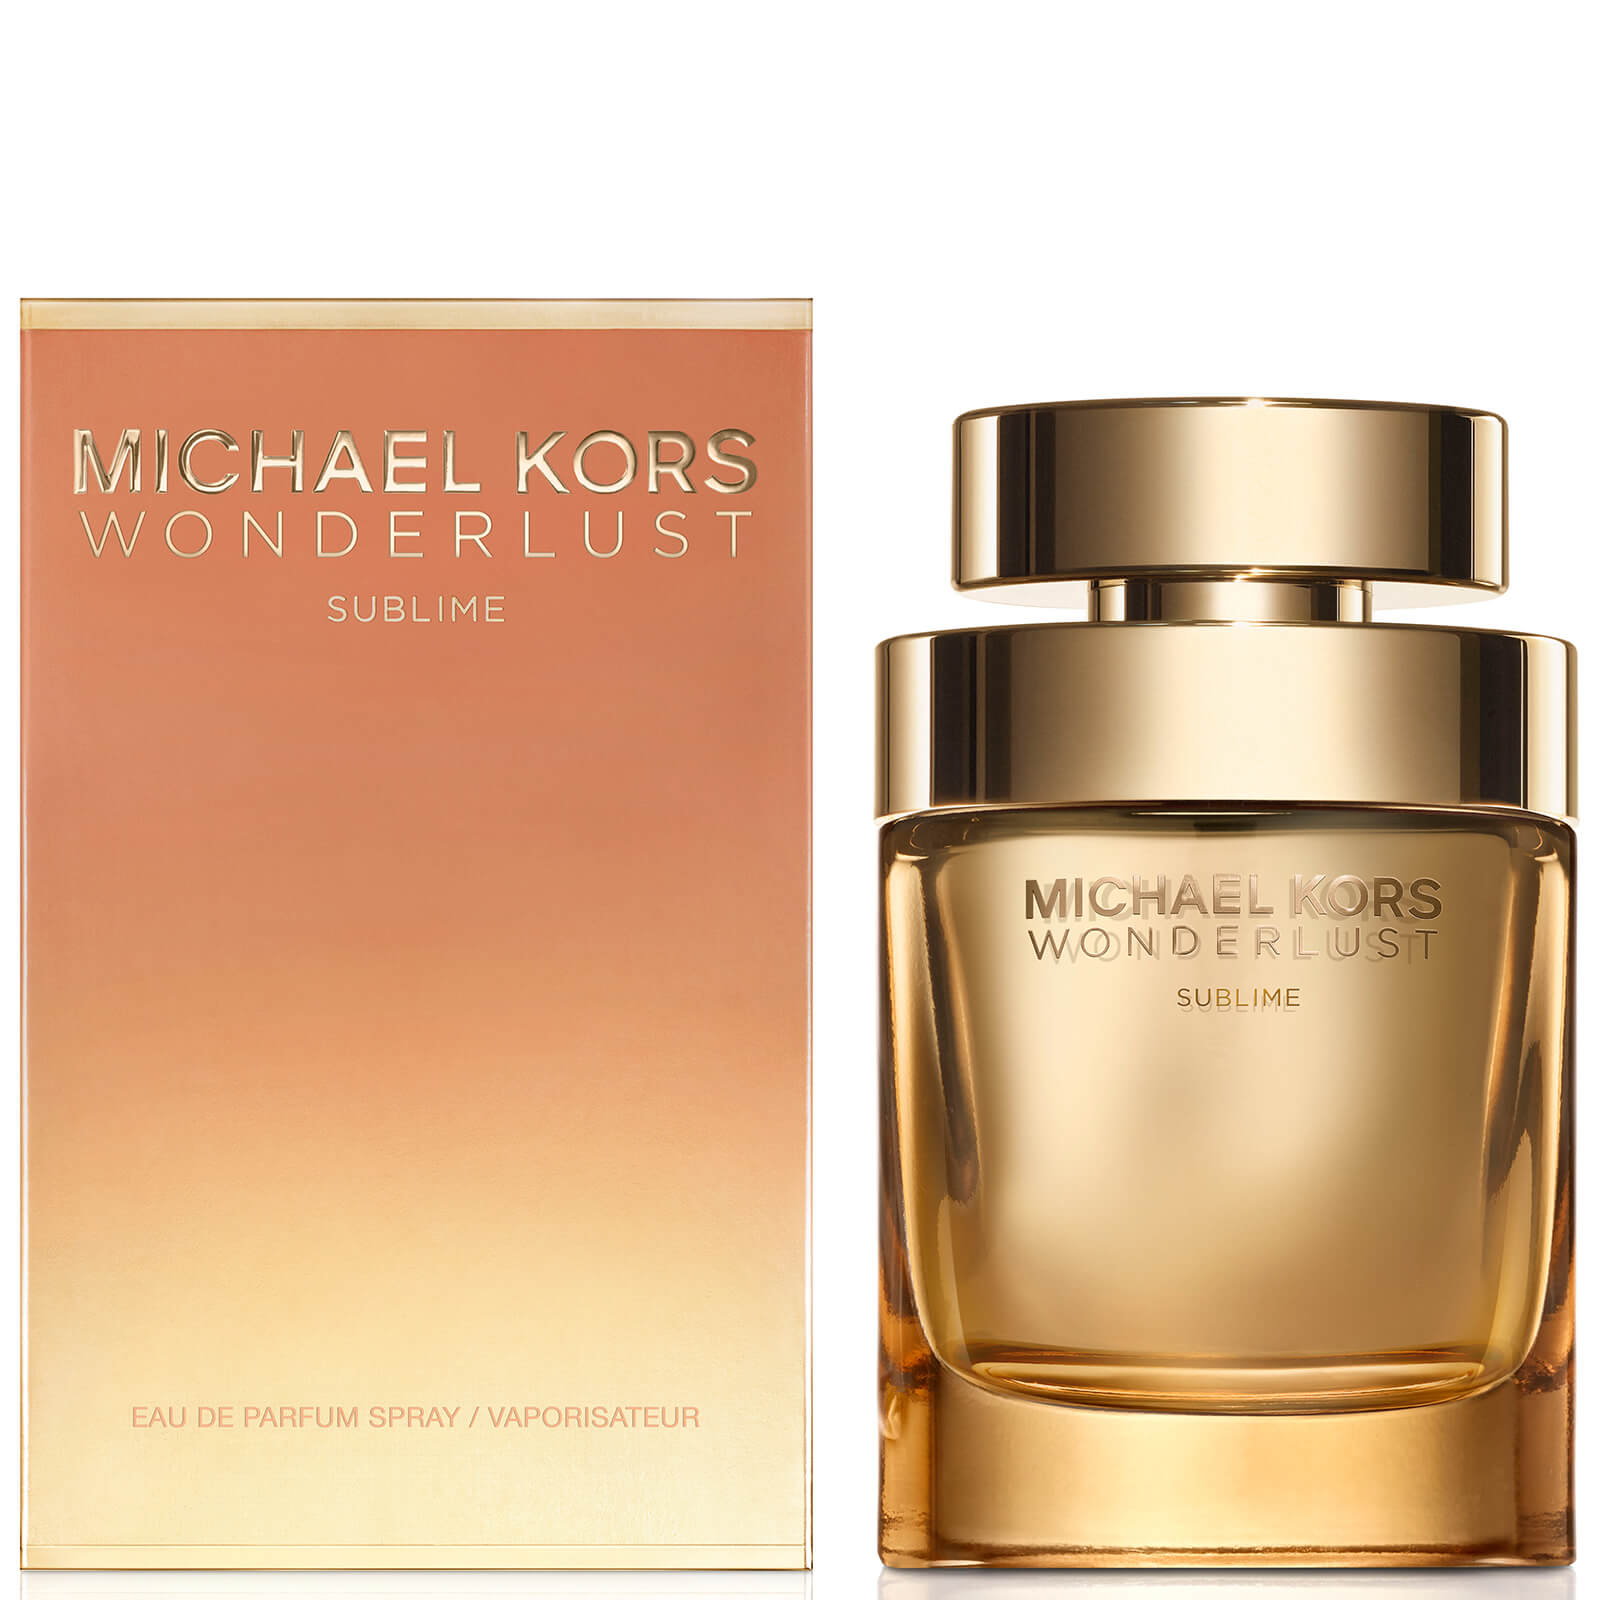 Michael Kors Wonderlust Sublime Eau de Parfum (Various Sizes)